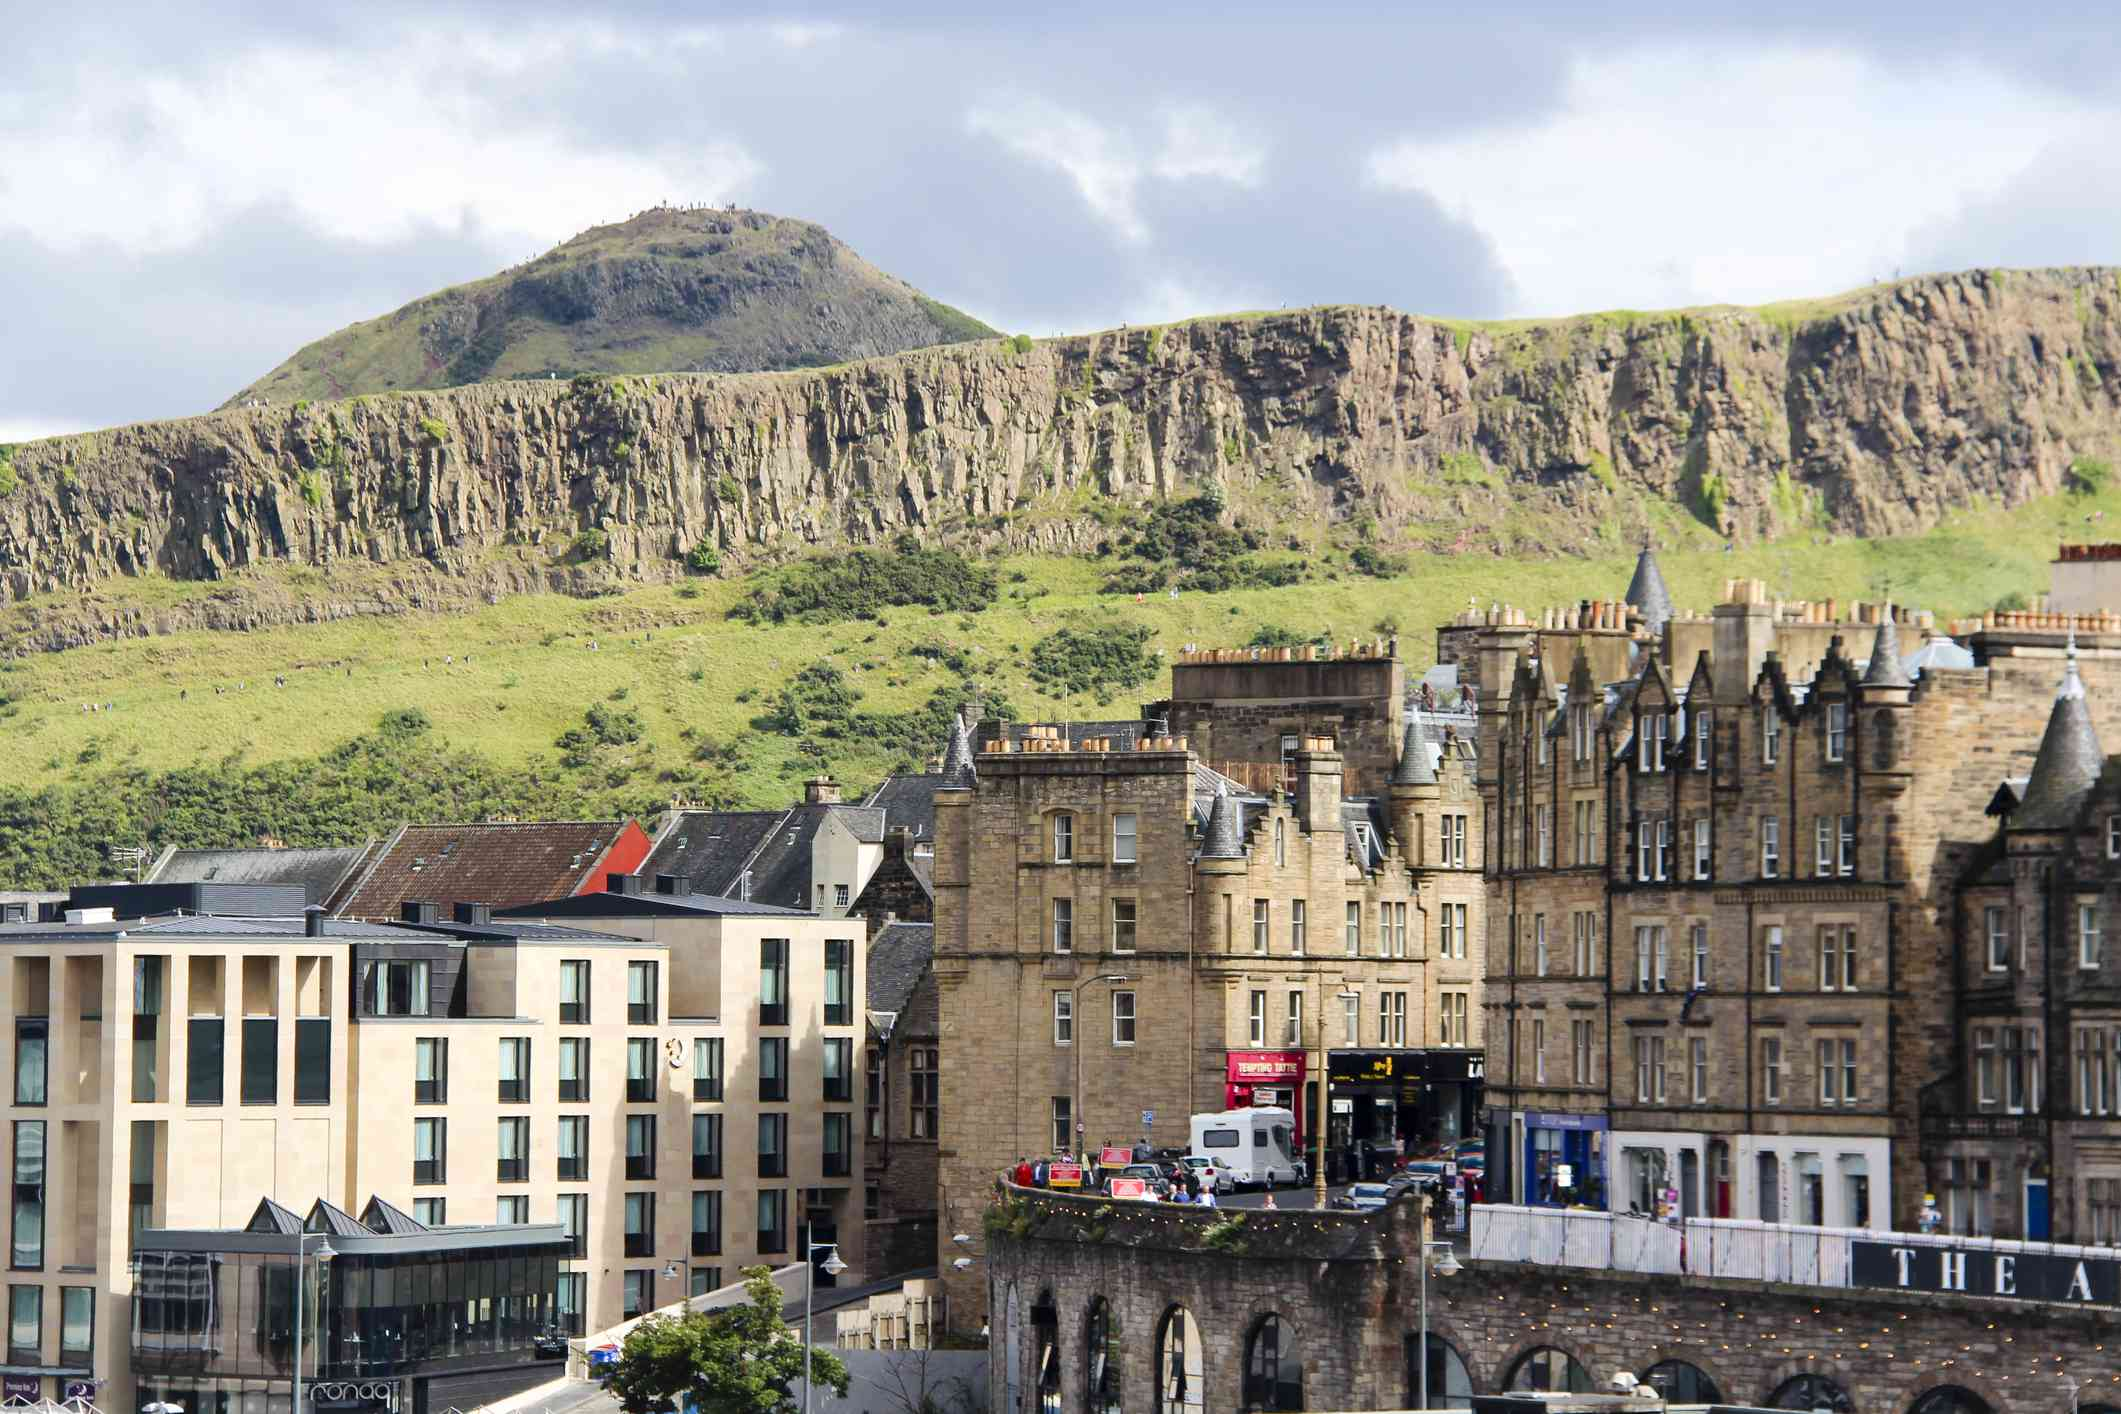 View of Arthur's Seat, a mountain in the city of Edinburgh, Scotland behind smaller hills and grass covered field with multi-story buildings of the city in the foreground